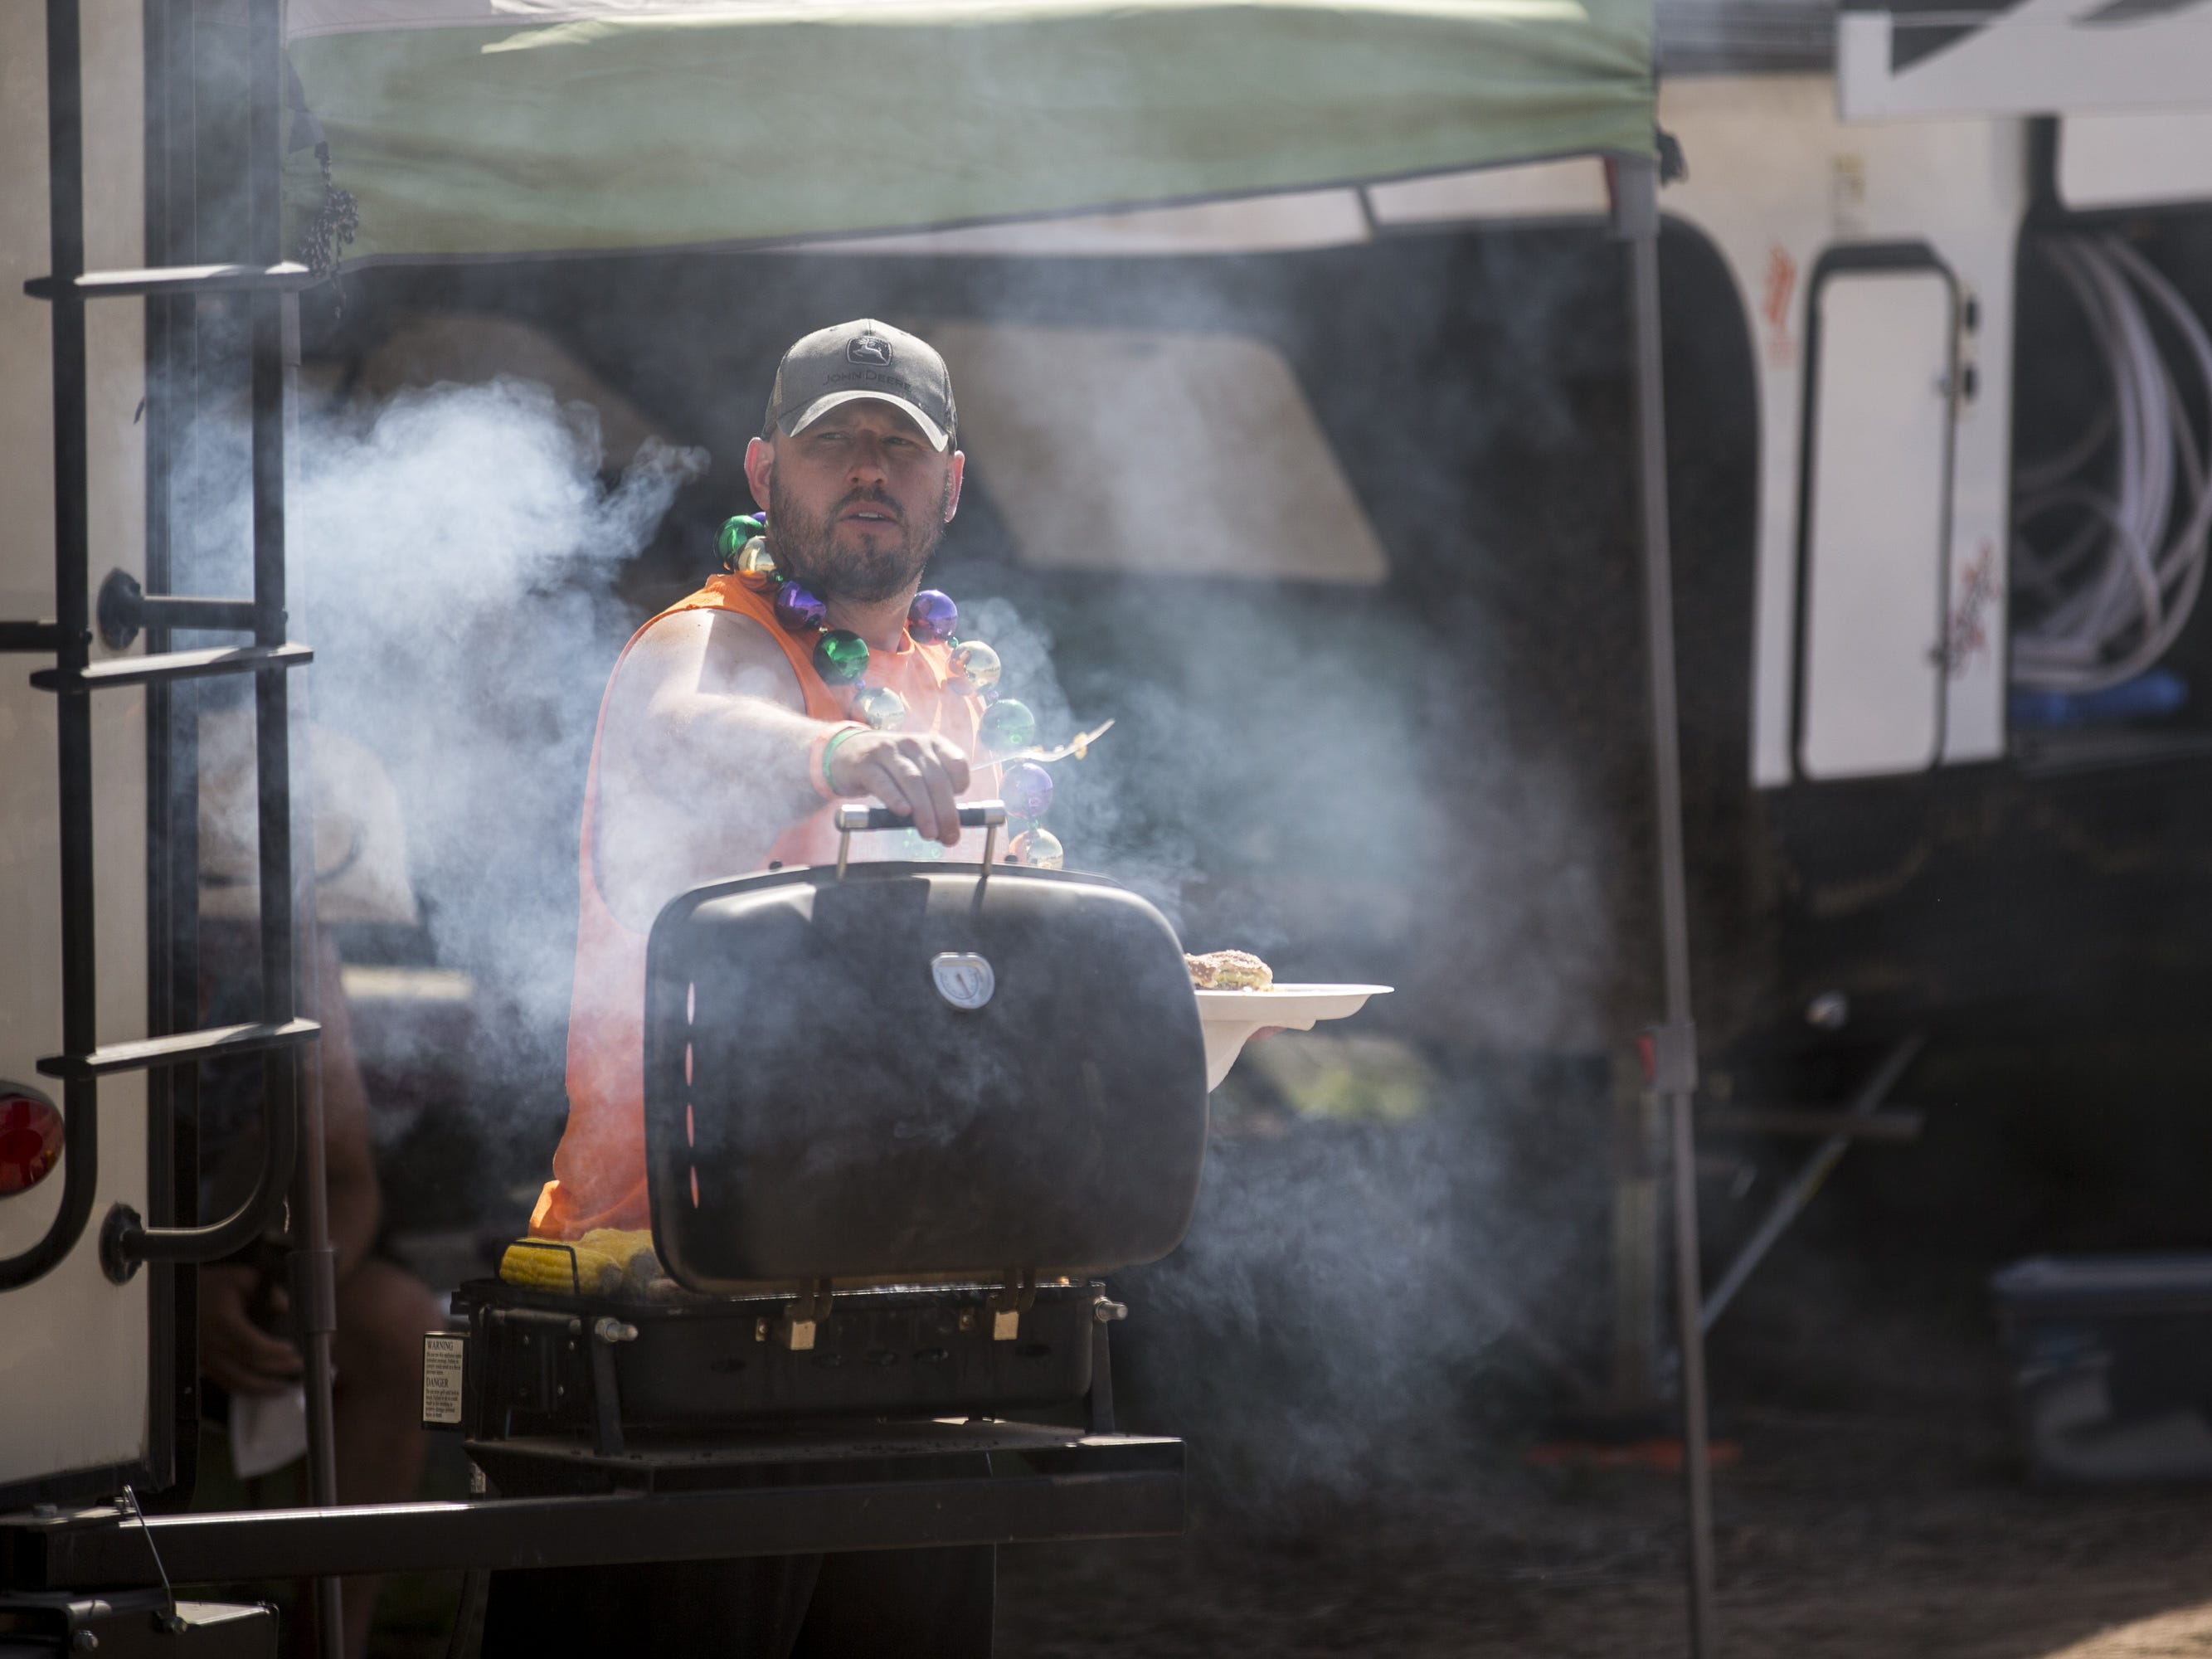 Nick S. grills at his campsite on Sunday, April 14, 2019, during Day 4 of Country Thunder Arizona in Florence, Ariz.